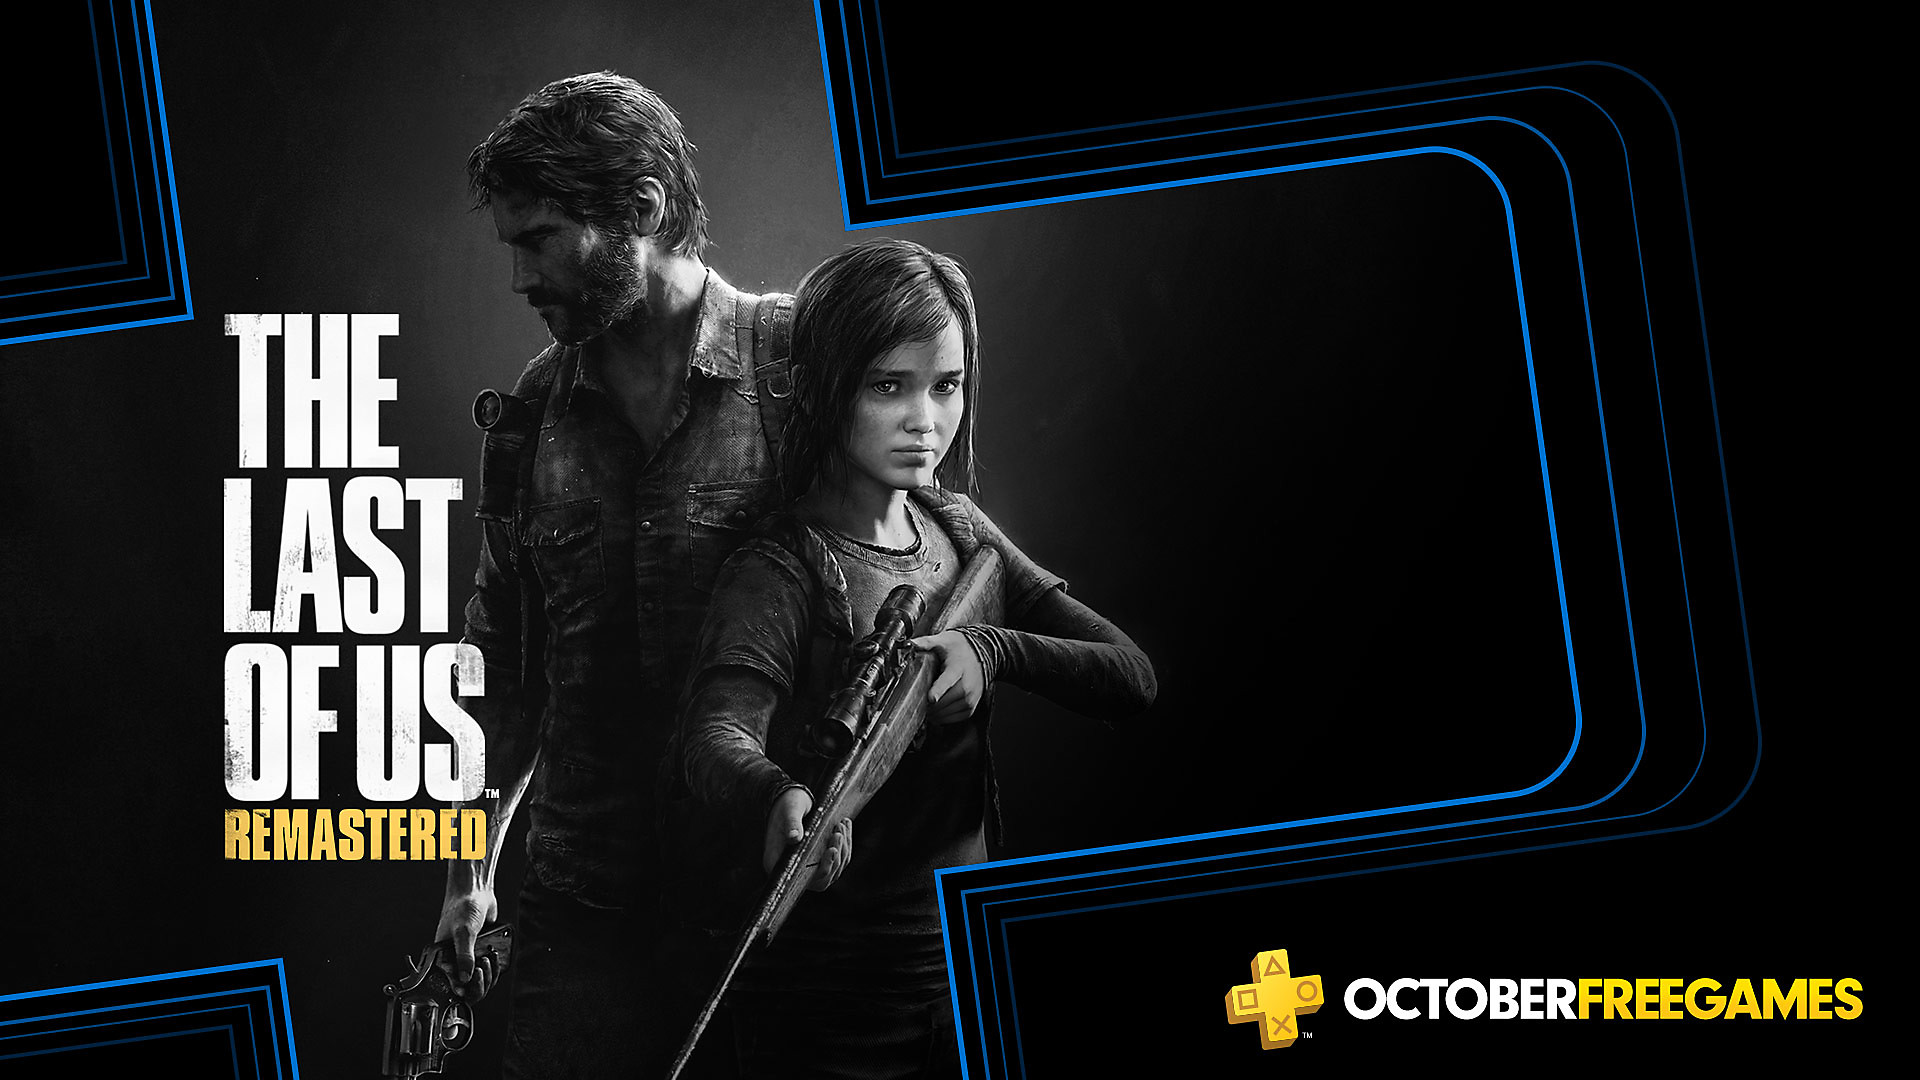 Click here to get The last of Us Remastered free from the PlayStation Store for PlayStation Plus members